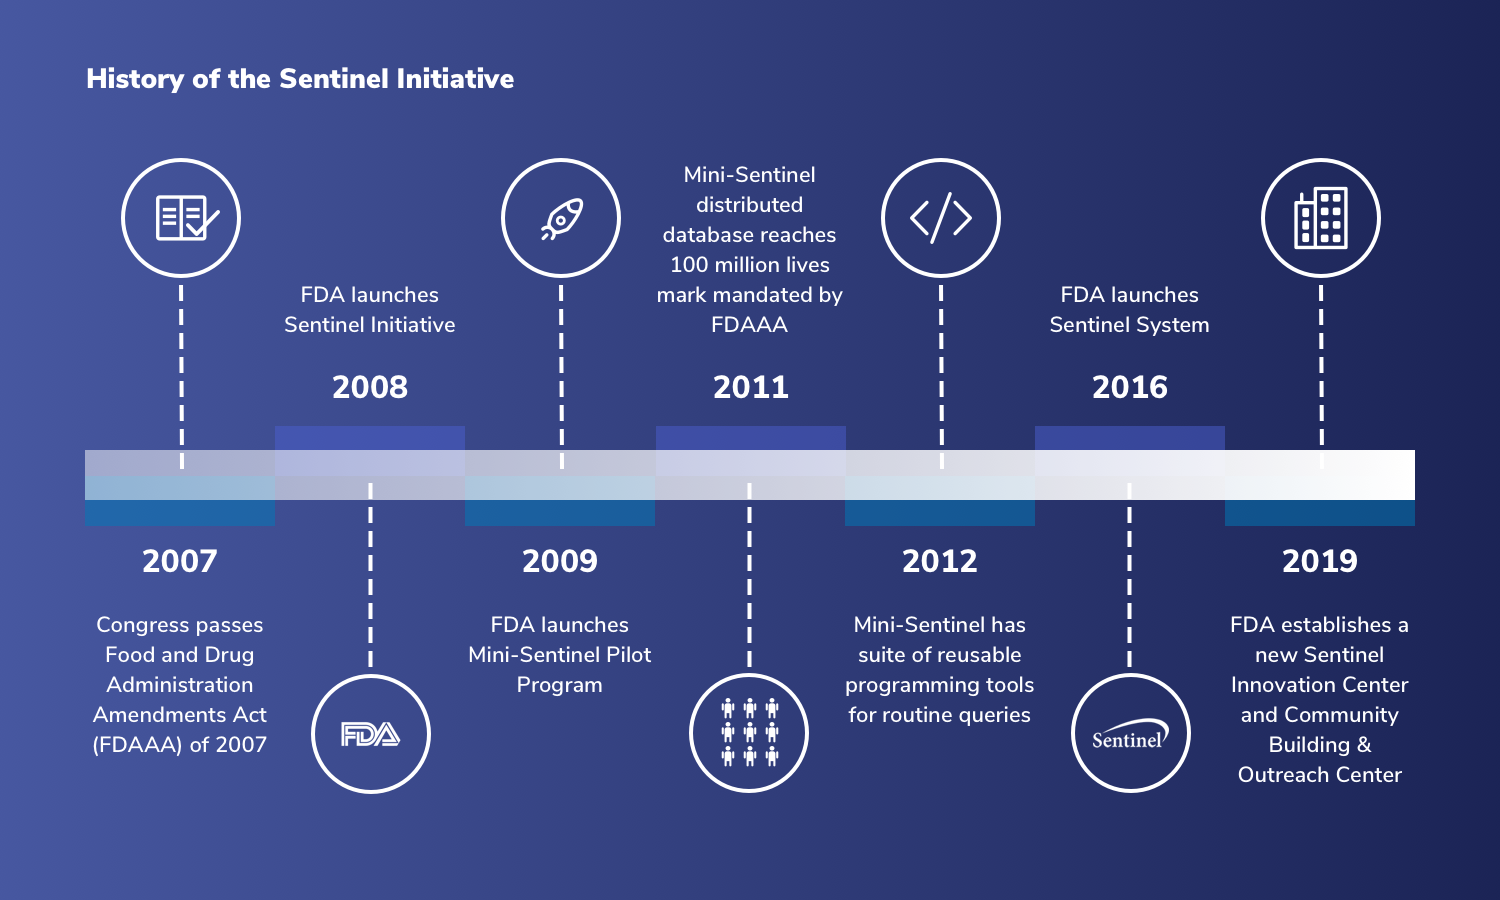 history of the Sentinel Initiative